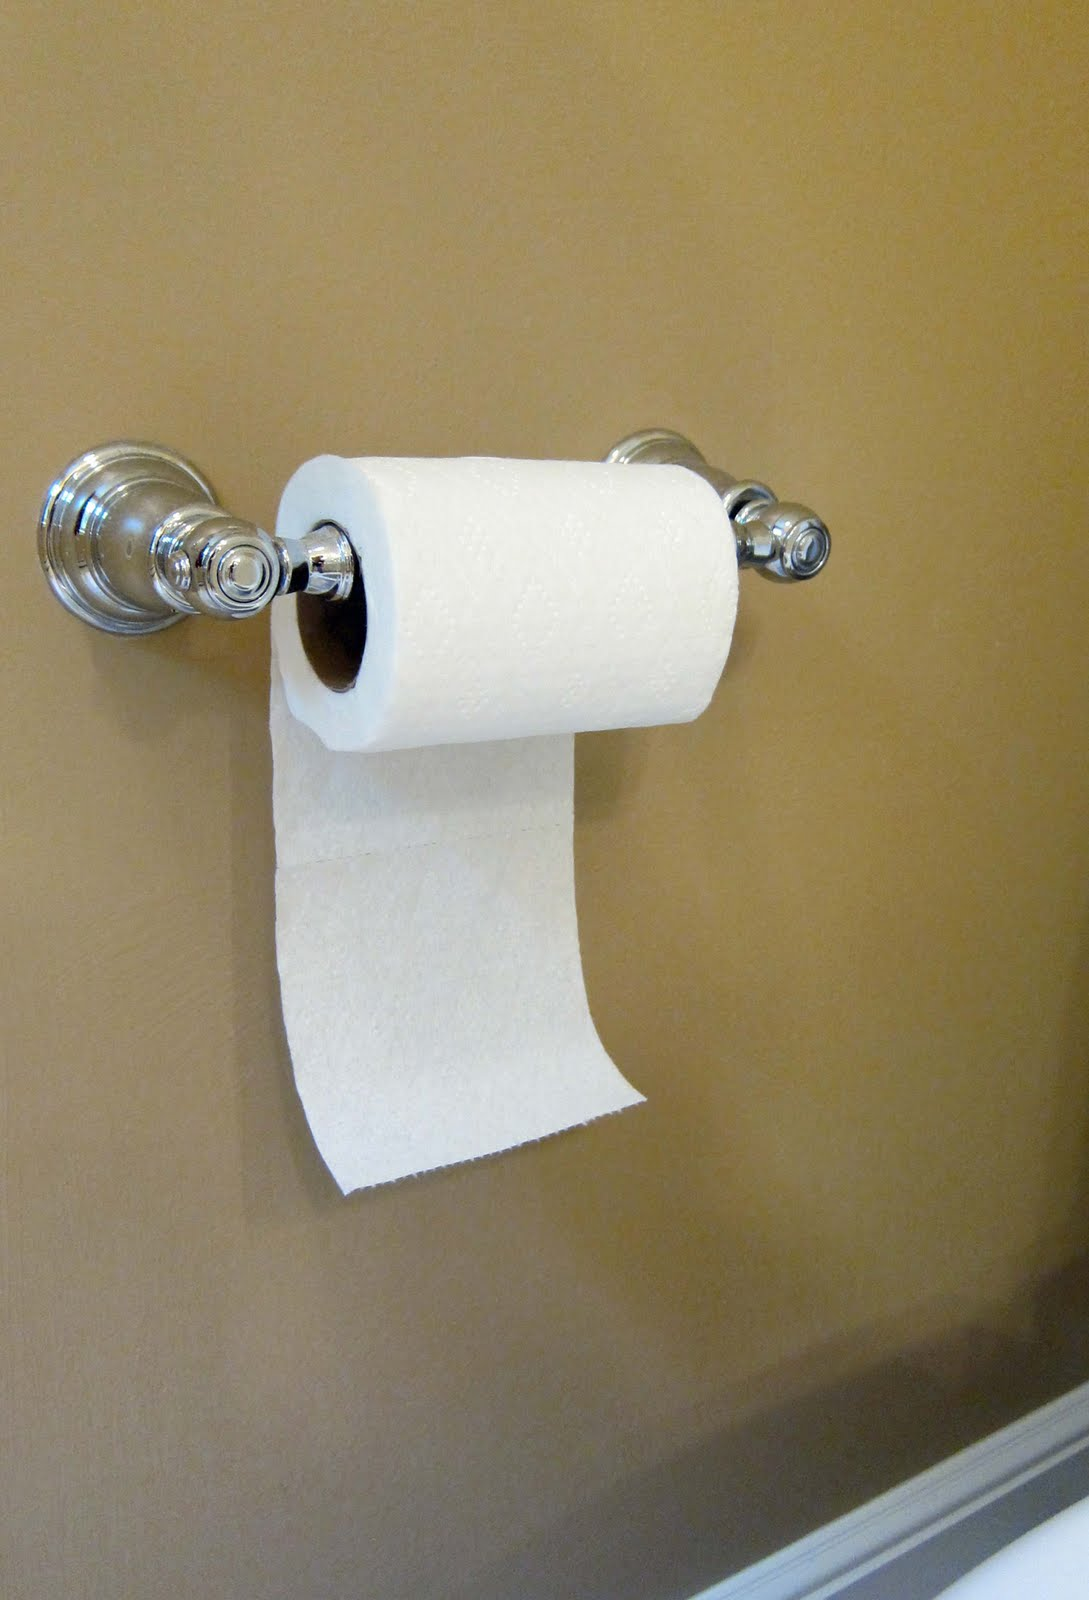 ToiletPaper holder to be tried as adult